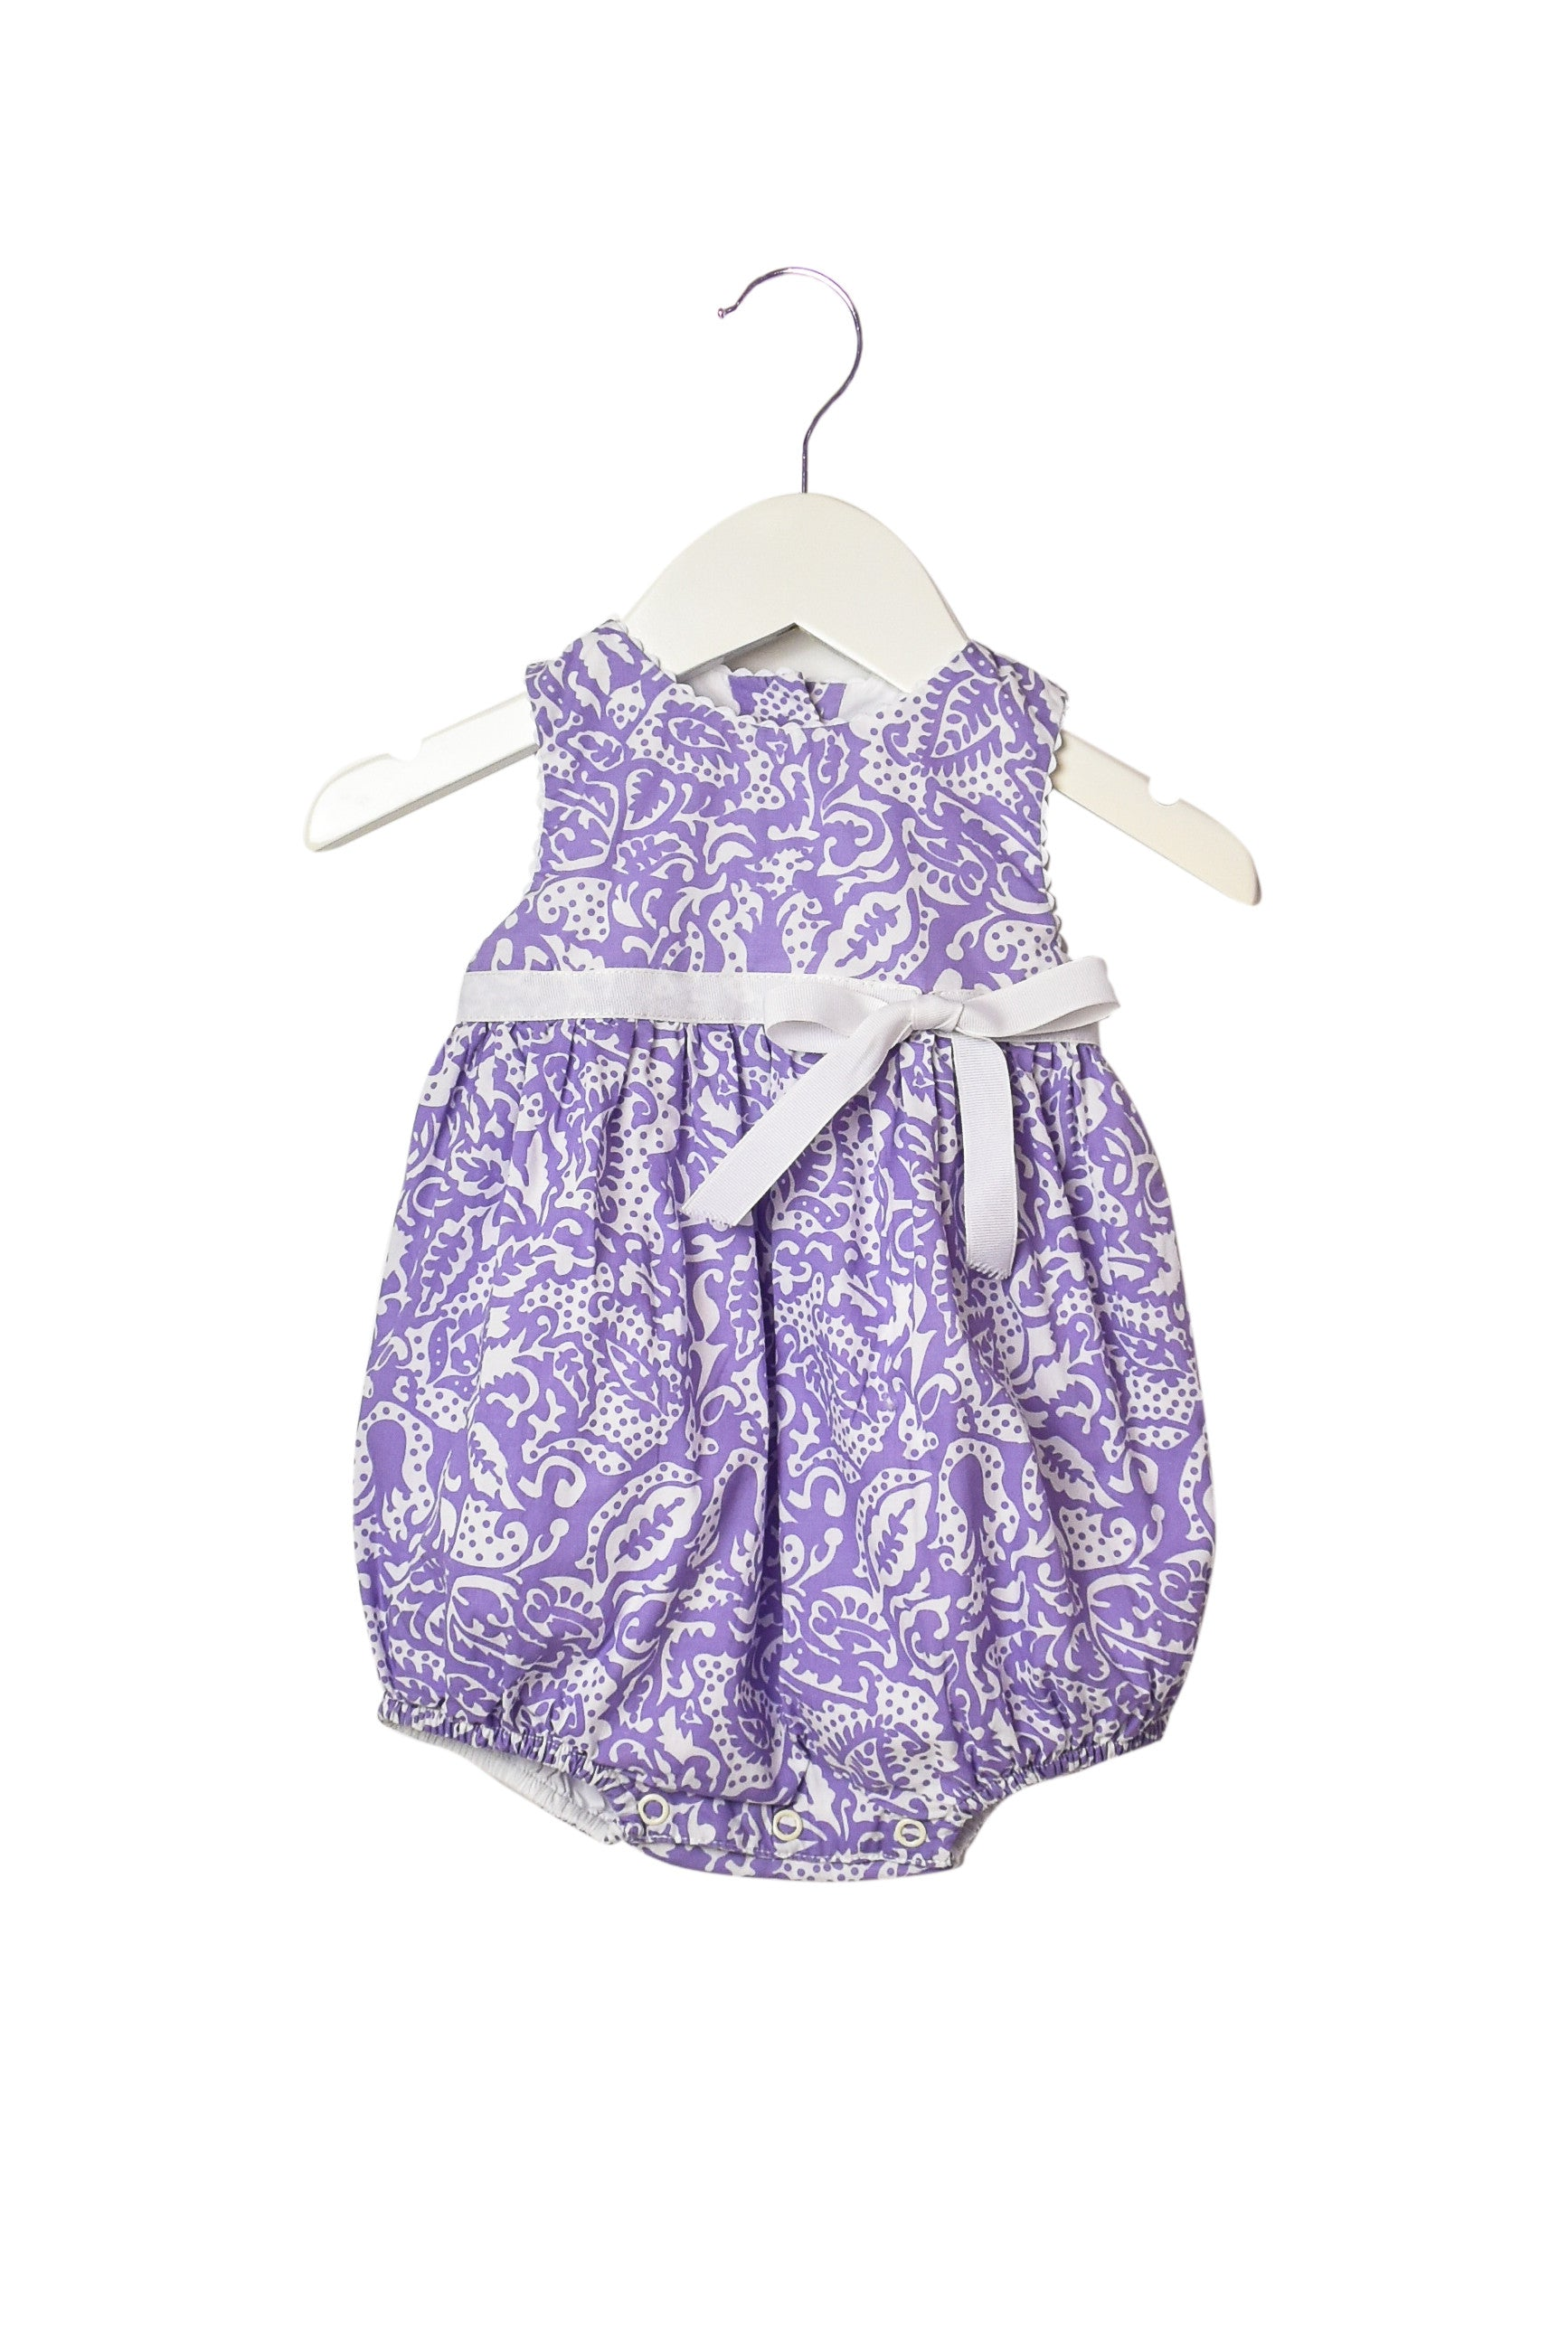 10004183 Elephantito Baby~Romper 6M, Elephantito Retykle | Online Baby & Kids Clothing Hong Kong